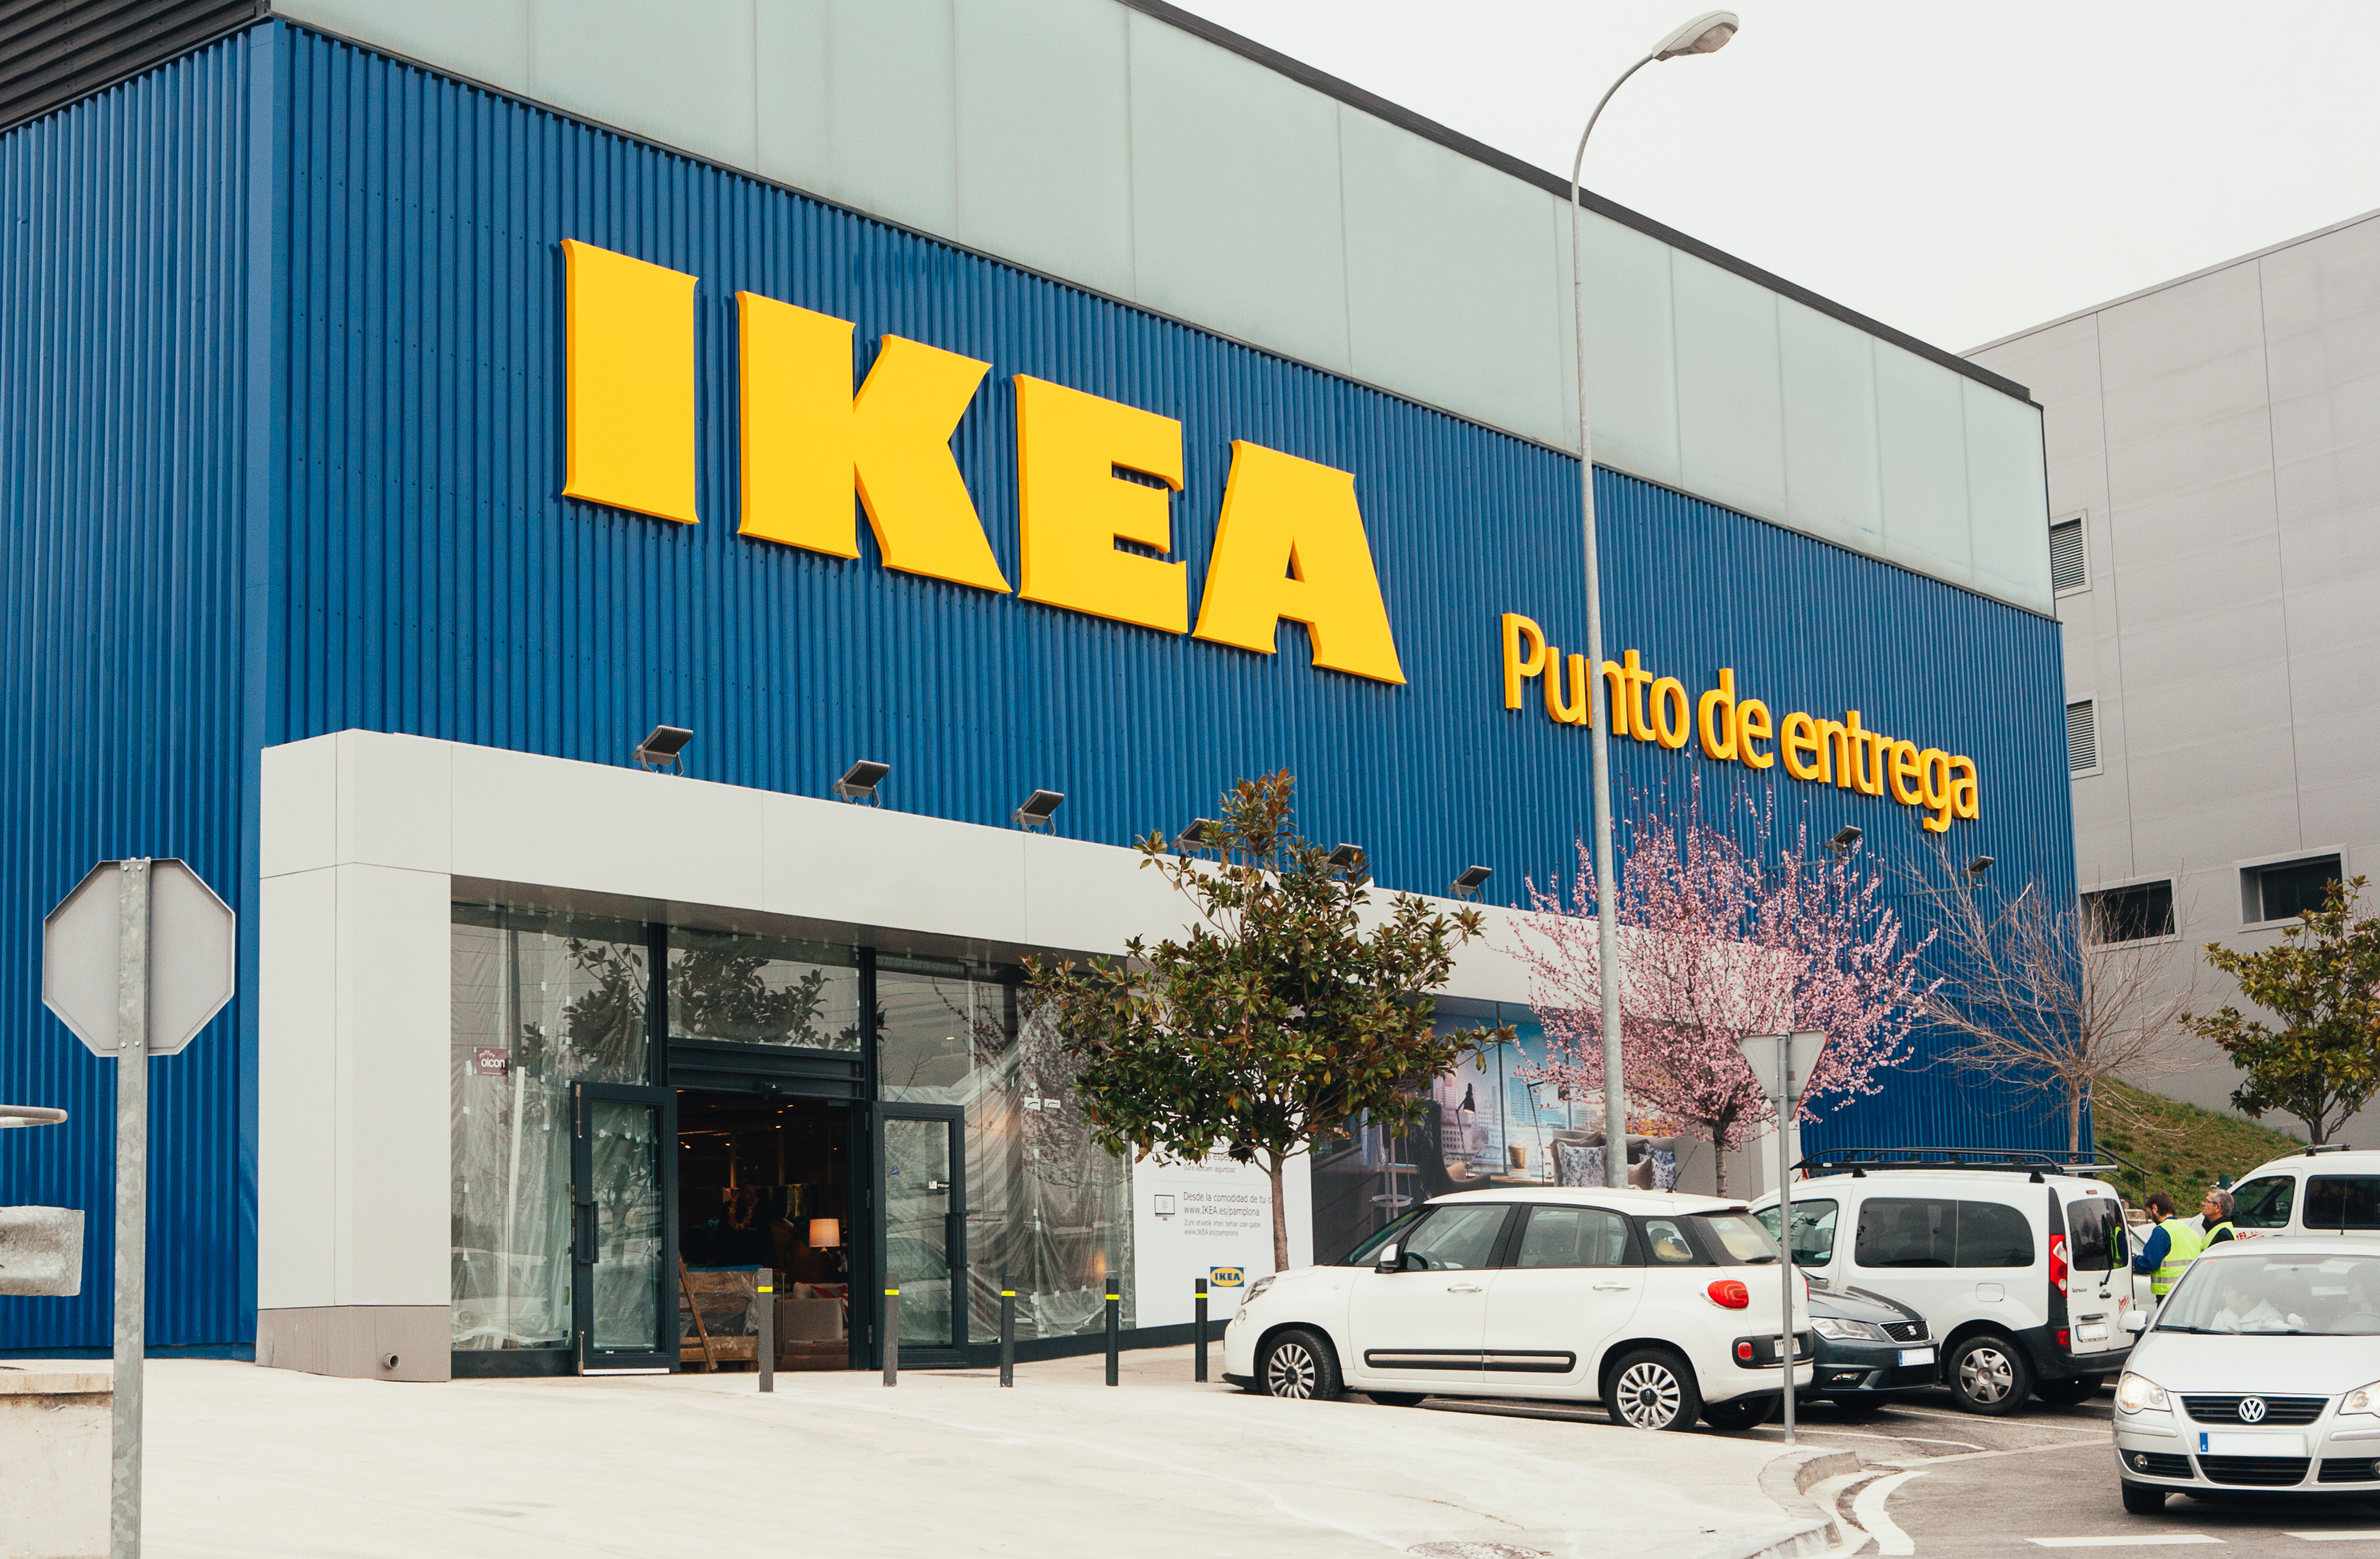 Shop with us for well-designed furniture at low prices online and at your local IKEA store.